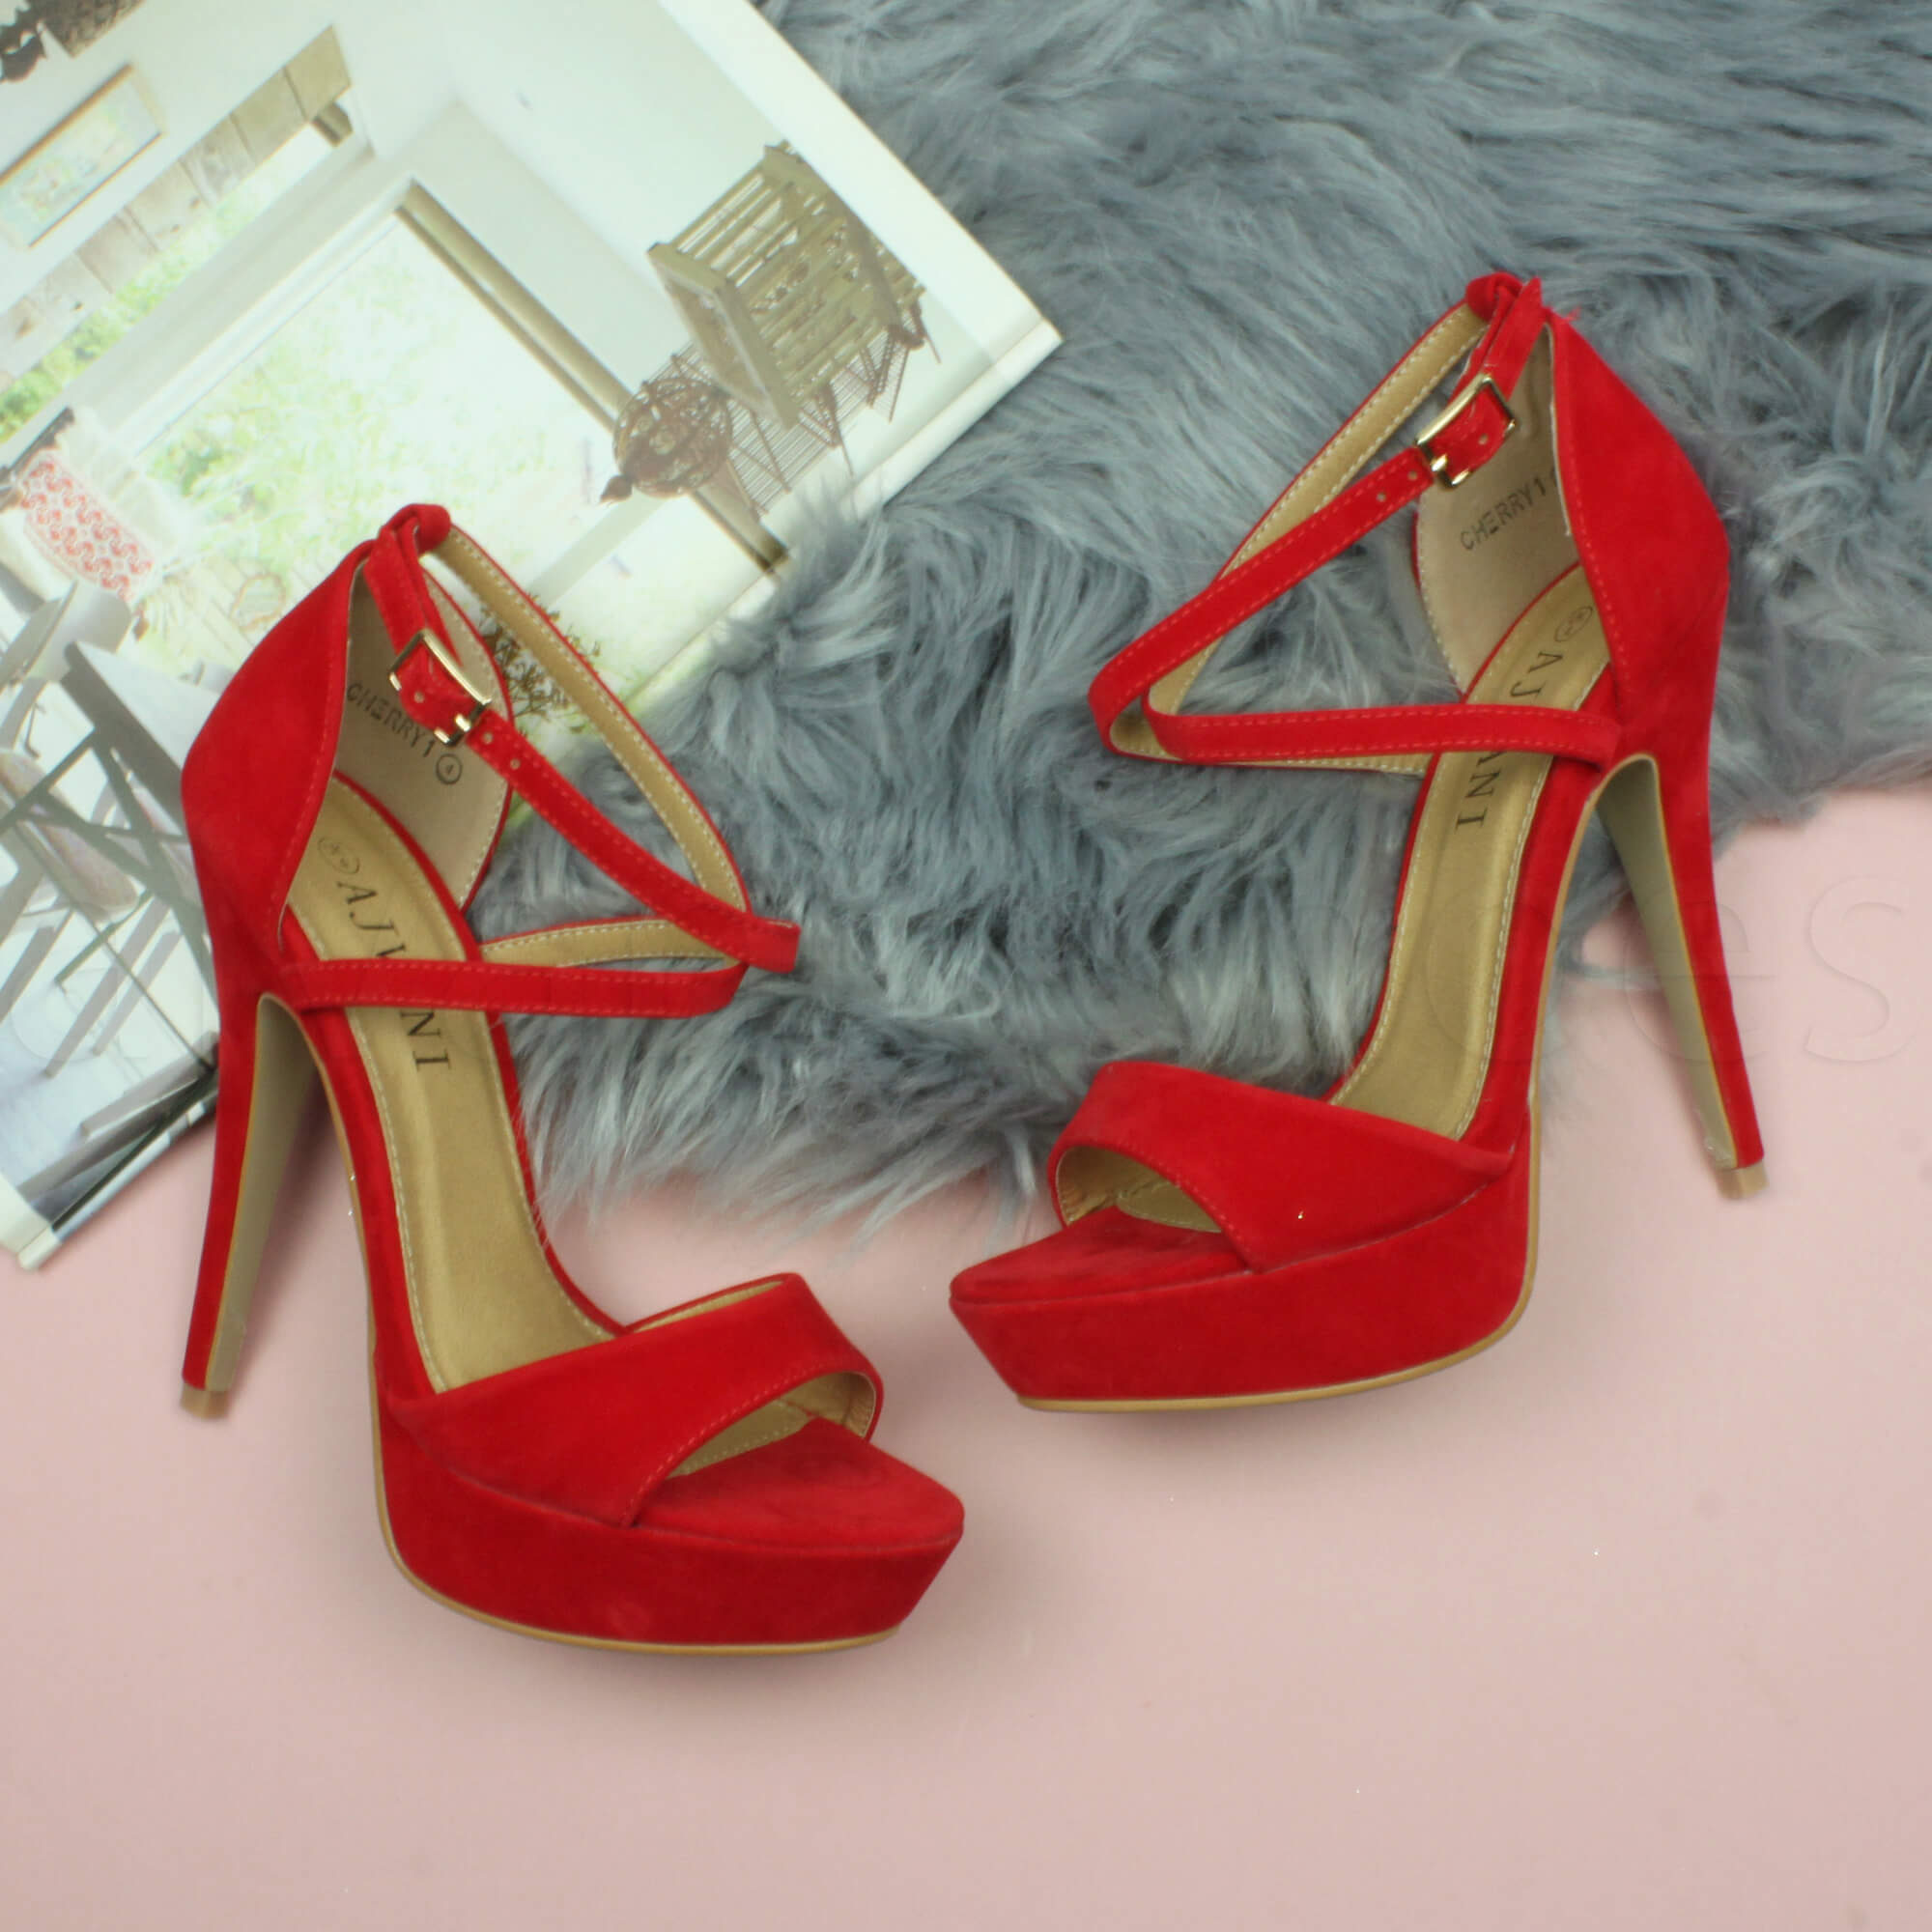 WOMENS-LADIES-PLATFORM-HIGH-HEEL-PEEP-TOE-CROSS-OVER-STRAPPY-SANDALS-SHOES-SIZE thumbnail 103